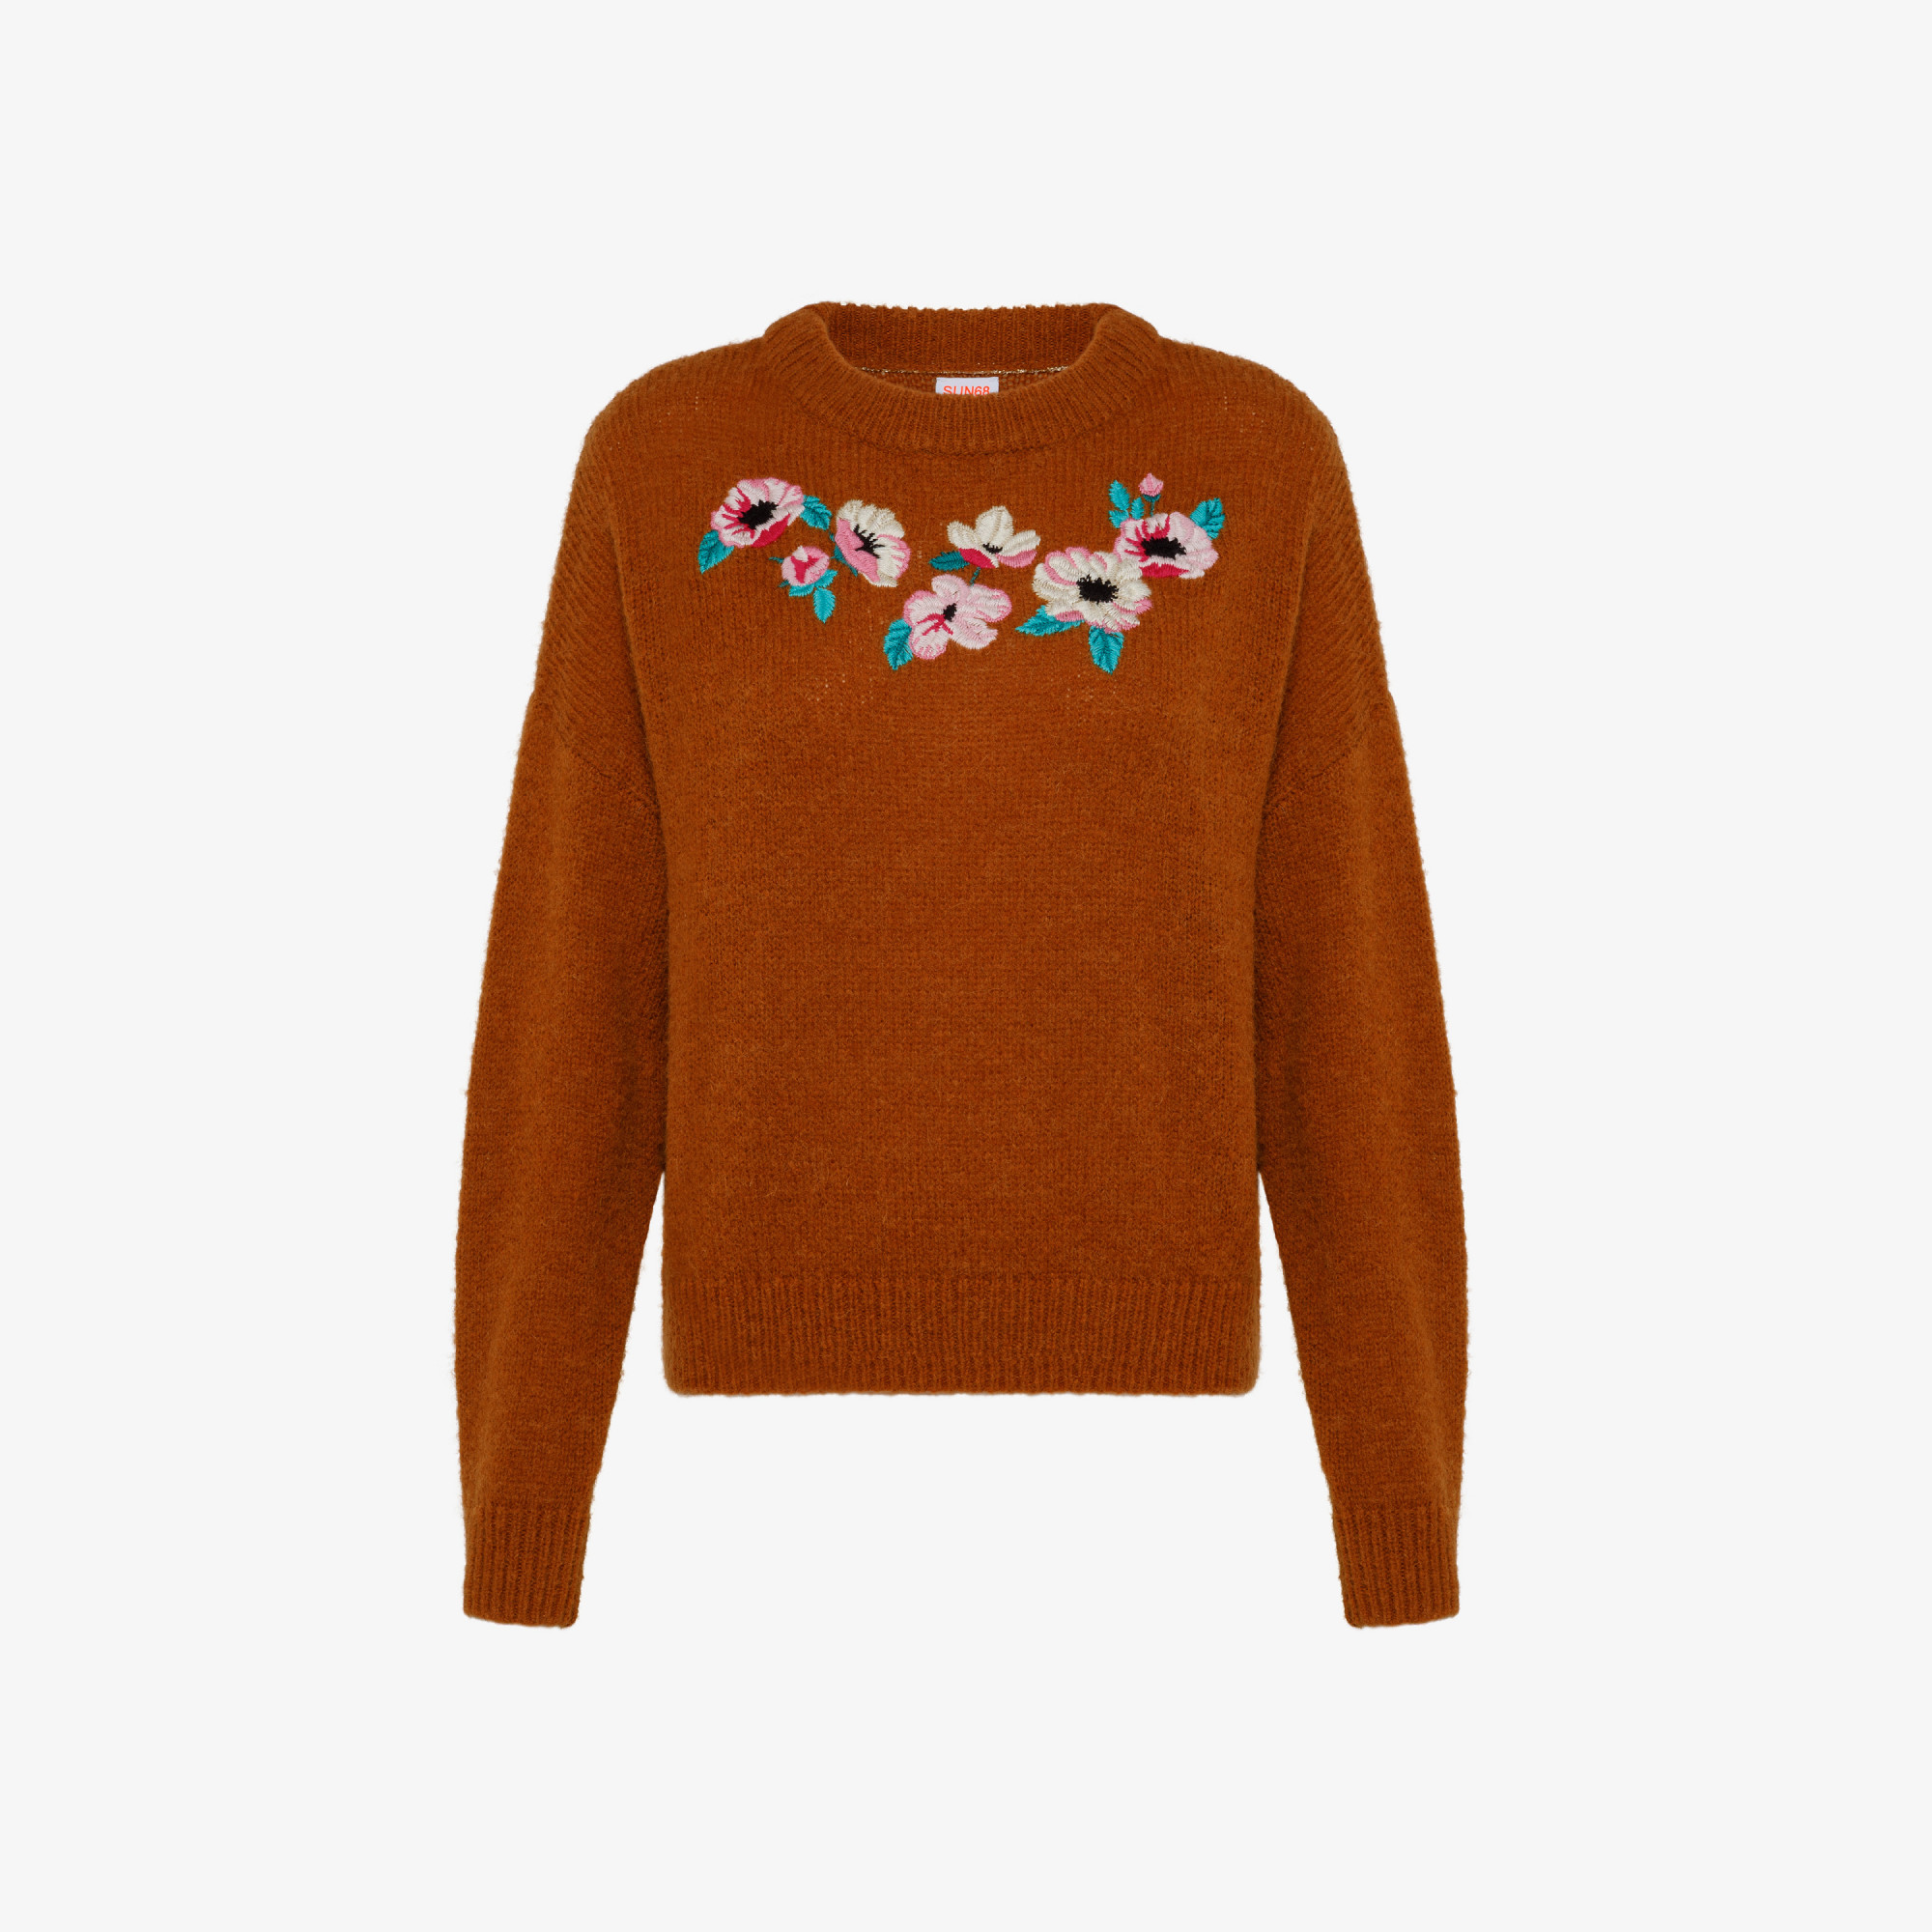 ROUND NECK EMBRODERY L/S SABBIA